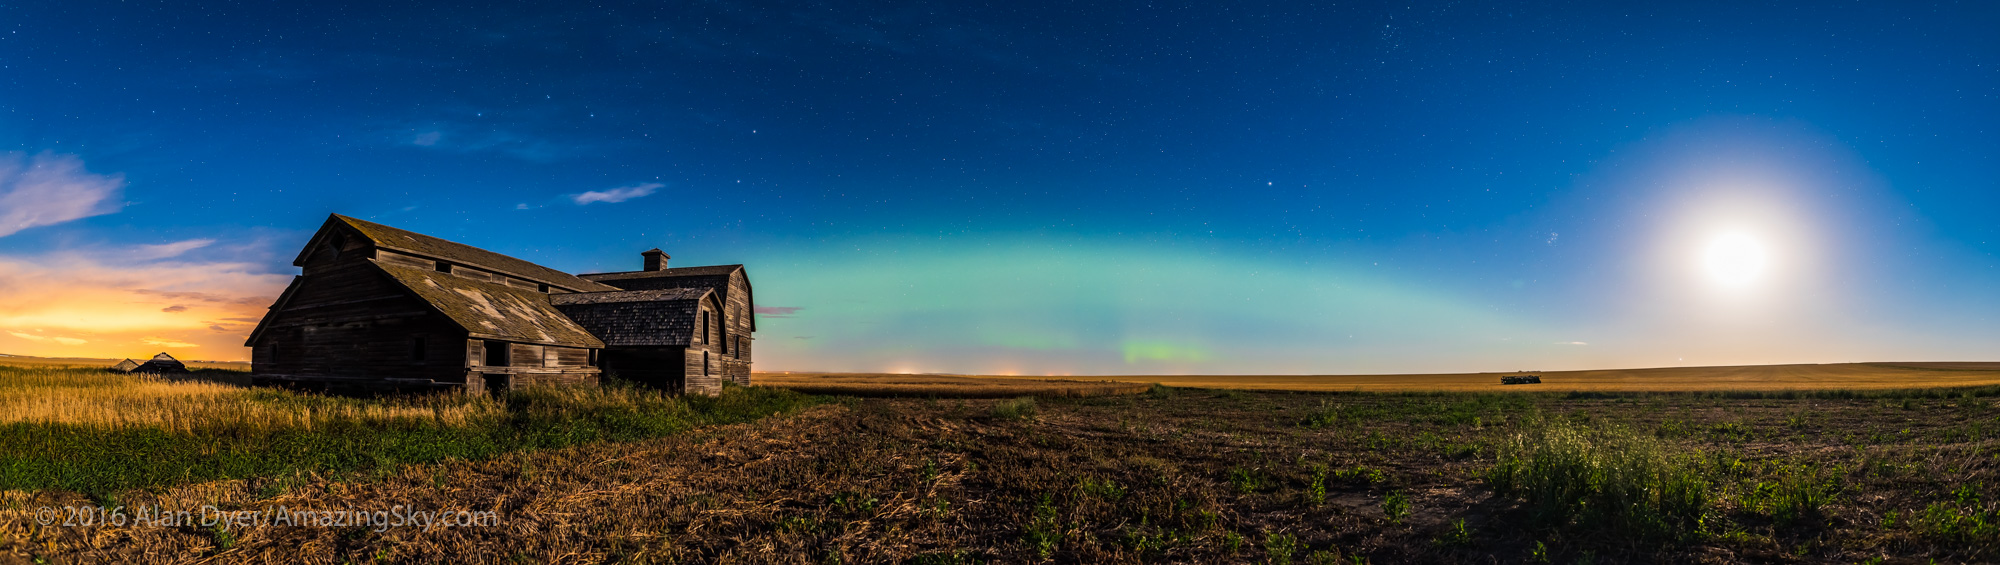 Aurora and Harvest Moon at the Old Barn